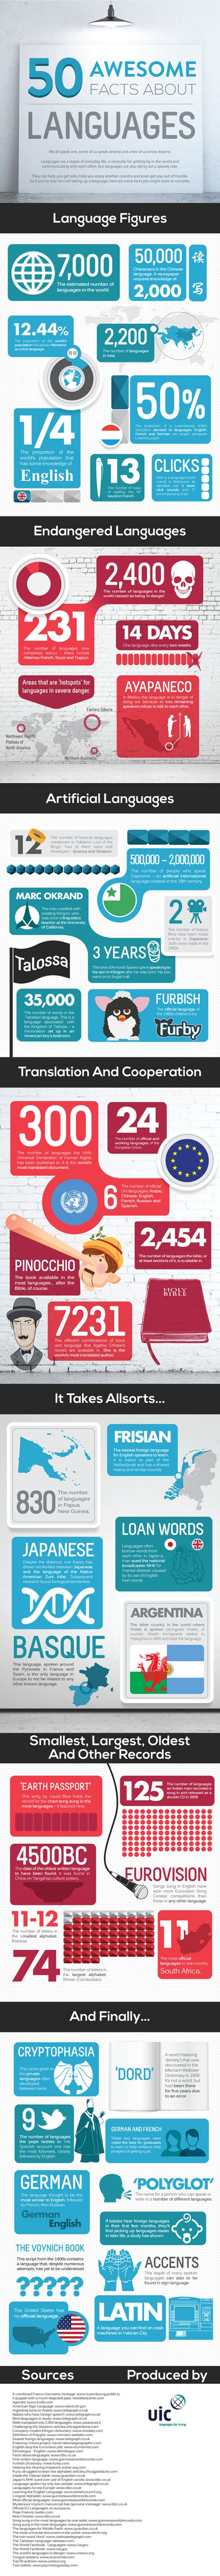 23 best Foreign Language images on Pinterest | Languages, Learning ...